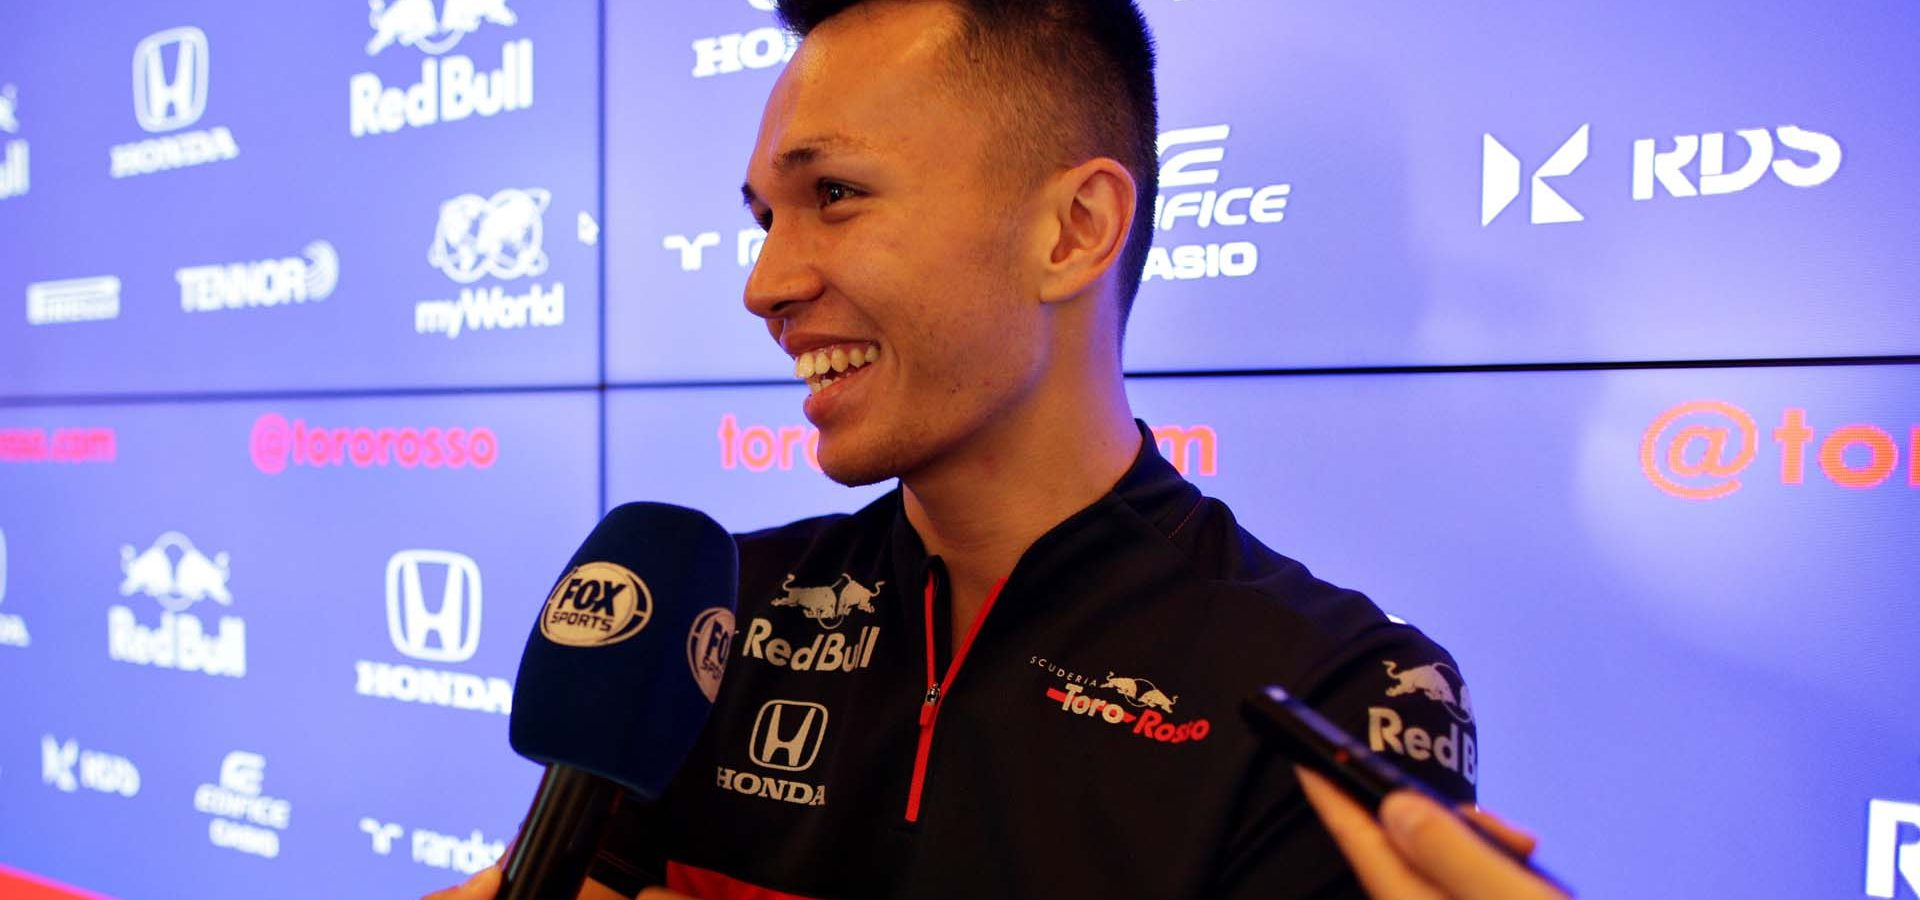 LE CASTELLET, FRANCE - JUNE 20: Alexander Albon of Thailand and Scuderia Toro Rosso talks to the media in the Paddock during previews ahead of the F1 Grand Prix of France at Circuit Paul Ricard on June 20, 2019 in Le Castellet, France. (Photo by Peter Fox/Getty Images) // Getty Images / Red Bull Content Pool  // AP-1ZQ1RD2CH1W11 // Usage for editorial use only // Please go to www.redbullcontentpool.com for further information. //